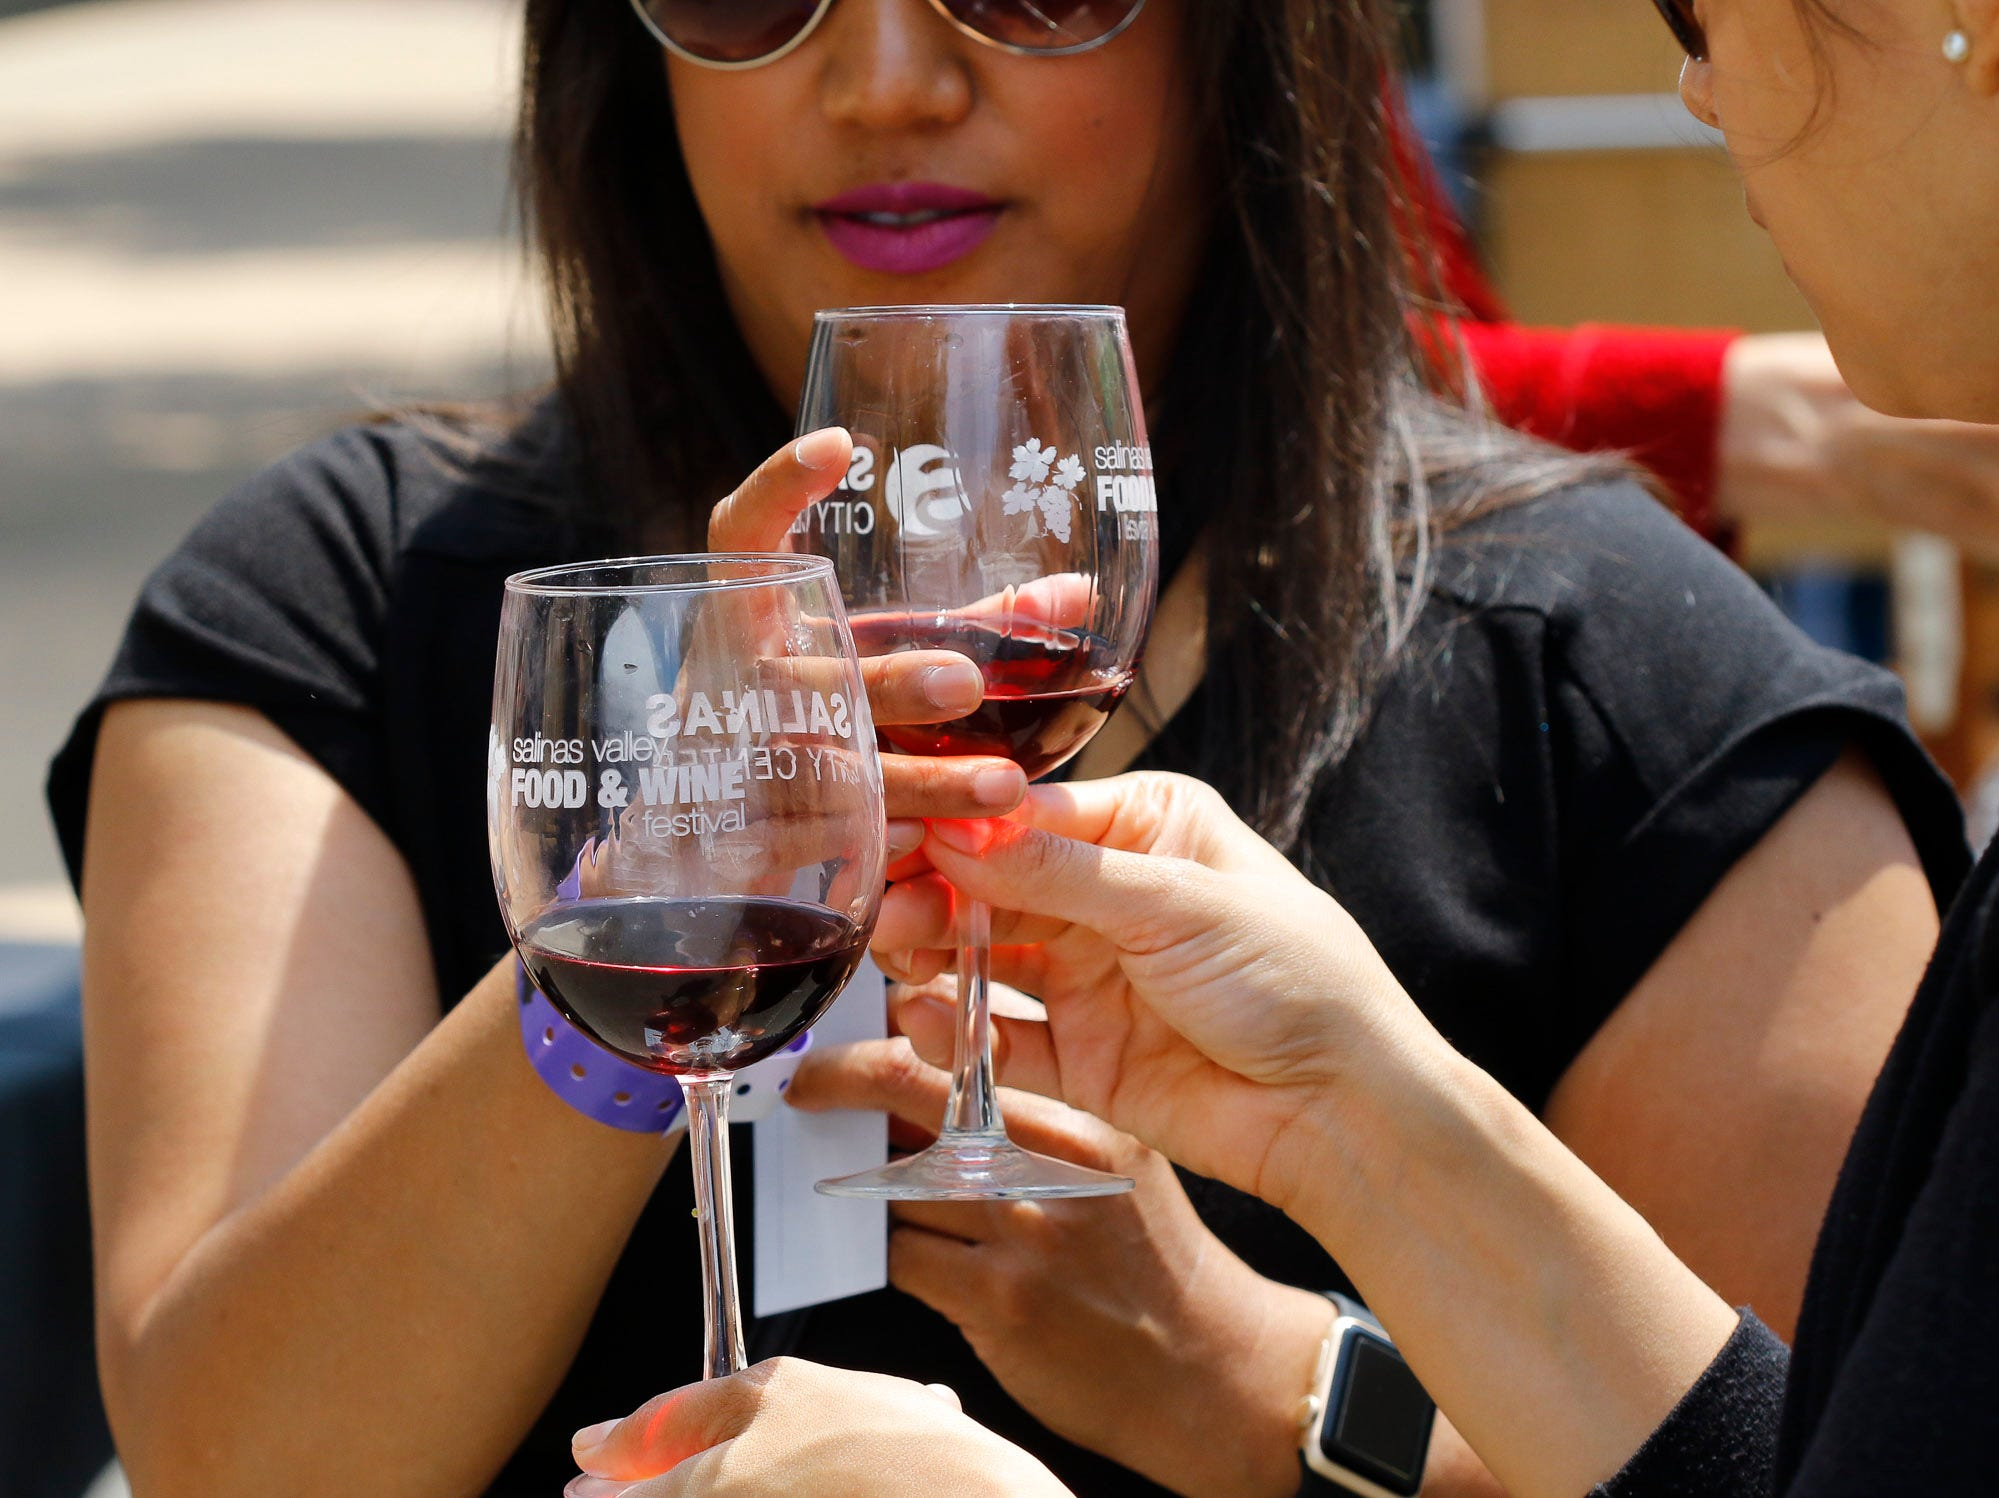 Attendees trade wine glasses during the 2018 Salinas Valley Food and Wine Festival which takes place on Main Street in Old Town Salinas on Saturday, August 11, 2018.